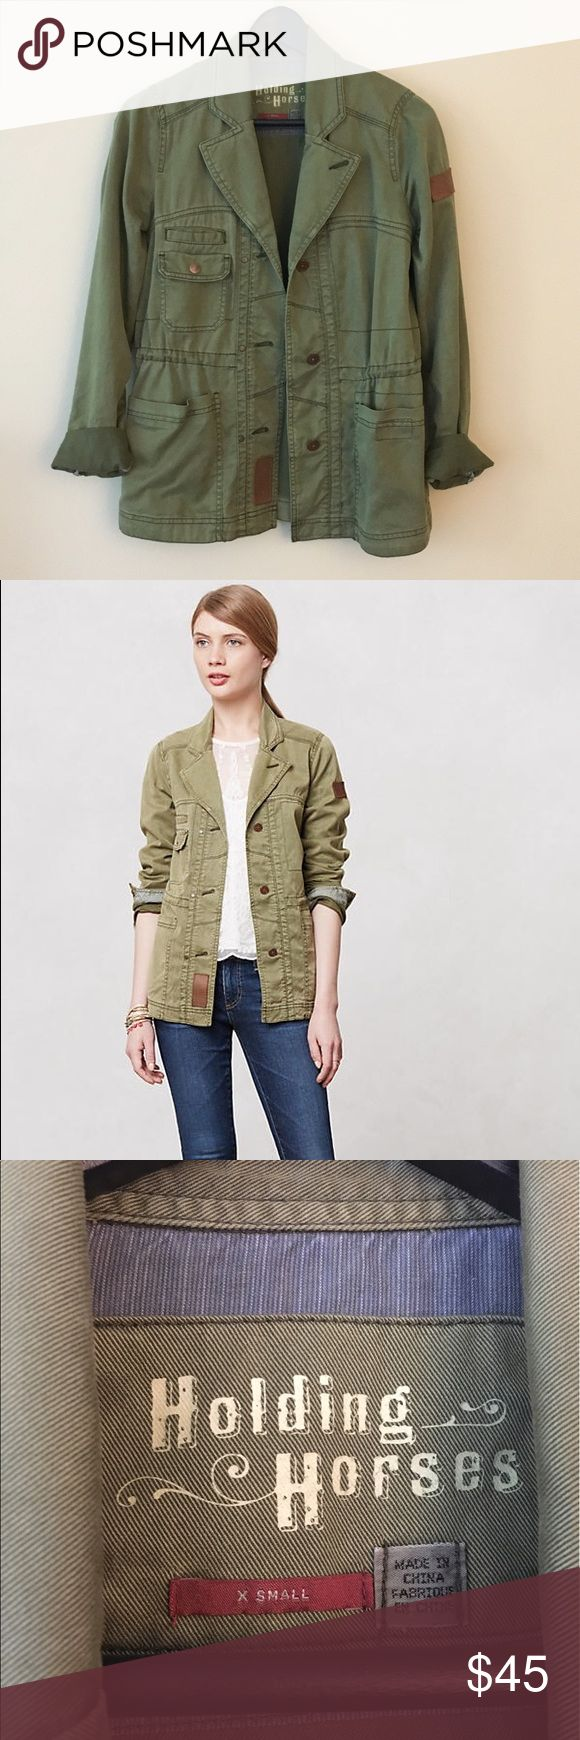 Holding Horses Army Jacket from Anthropologie Holding Horses Elsie Army Jacket from Anthropologie. I love this jacket, but I never wear it so I need to let it go! Perfect versatile piece, classic army style jacket. No stains or wear, great condition! Anthropologie Jackets & Coats